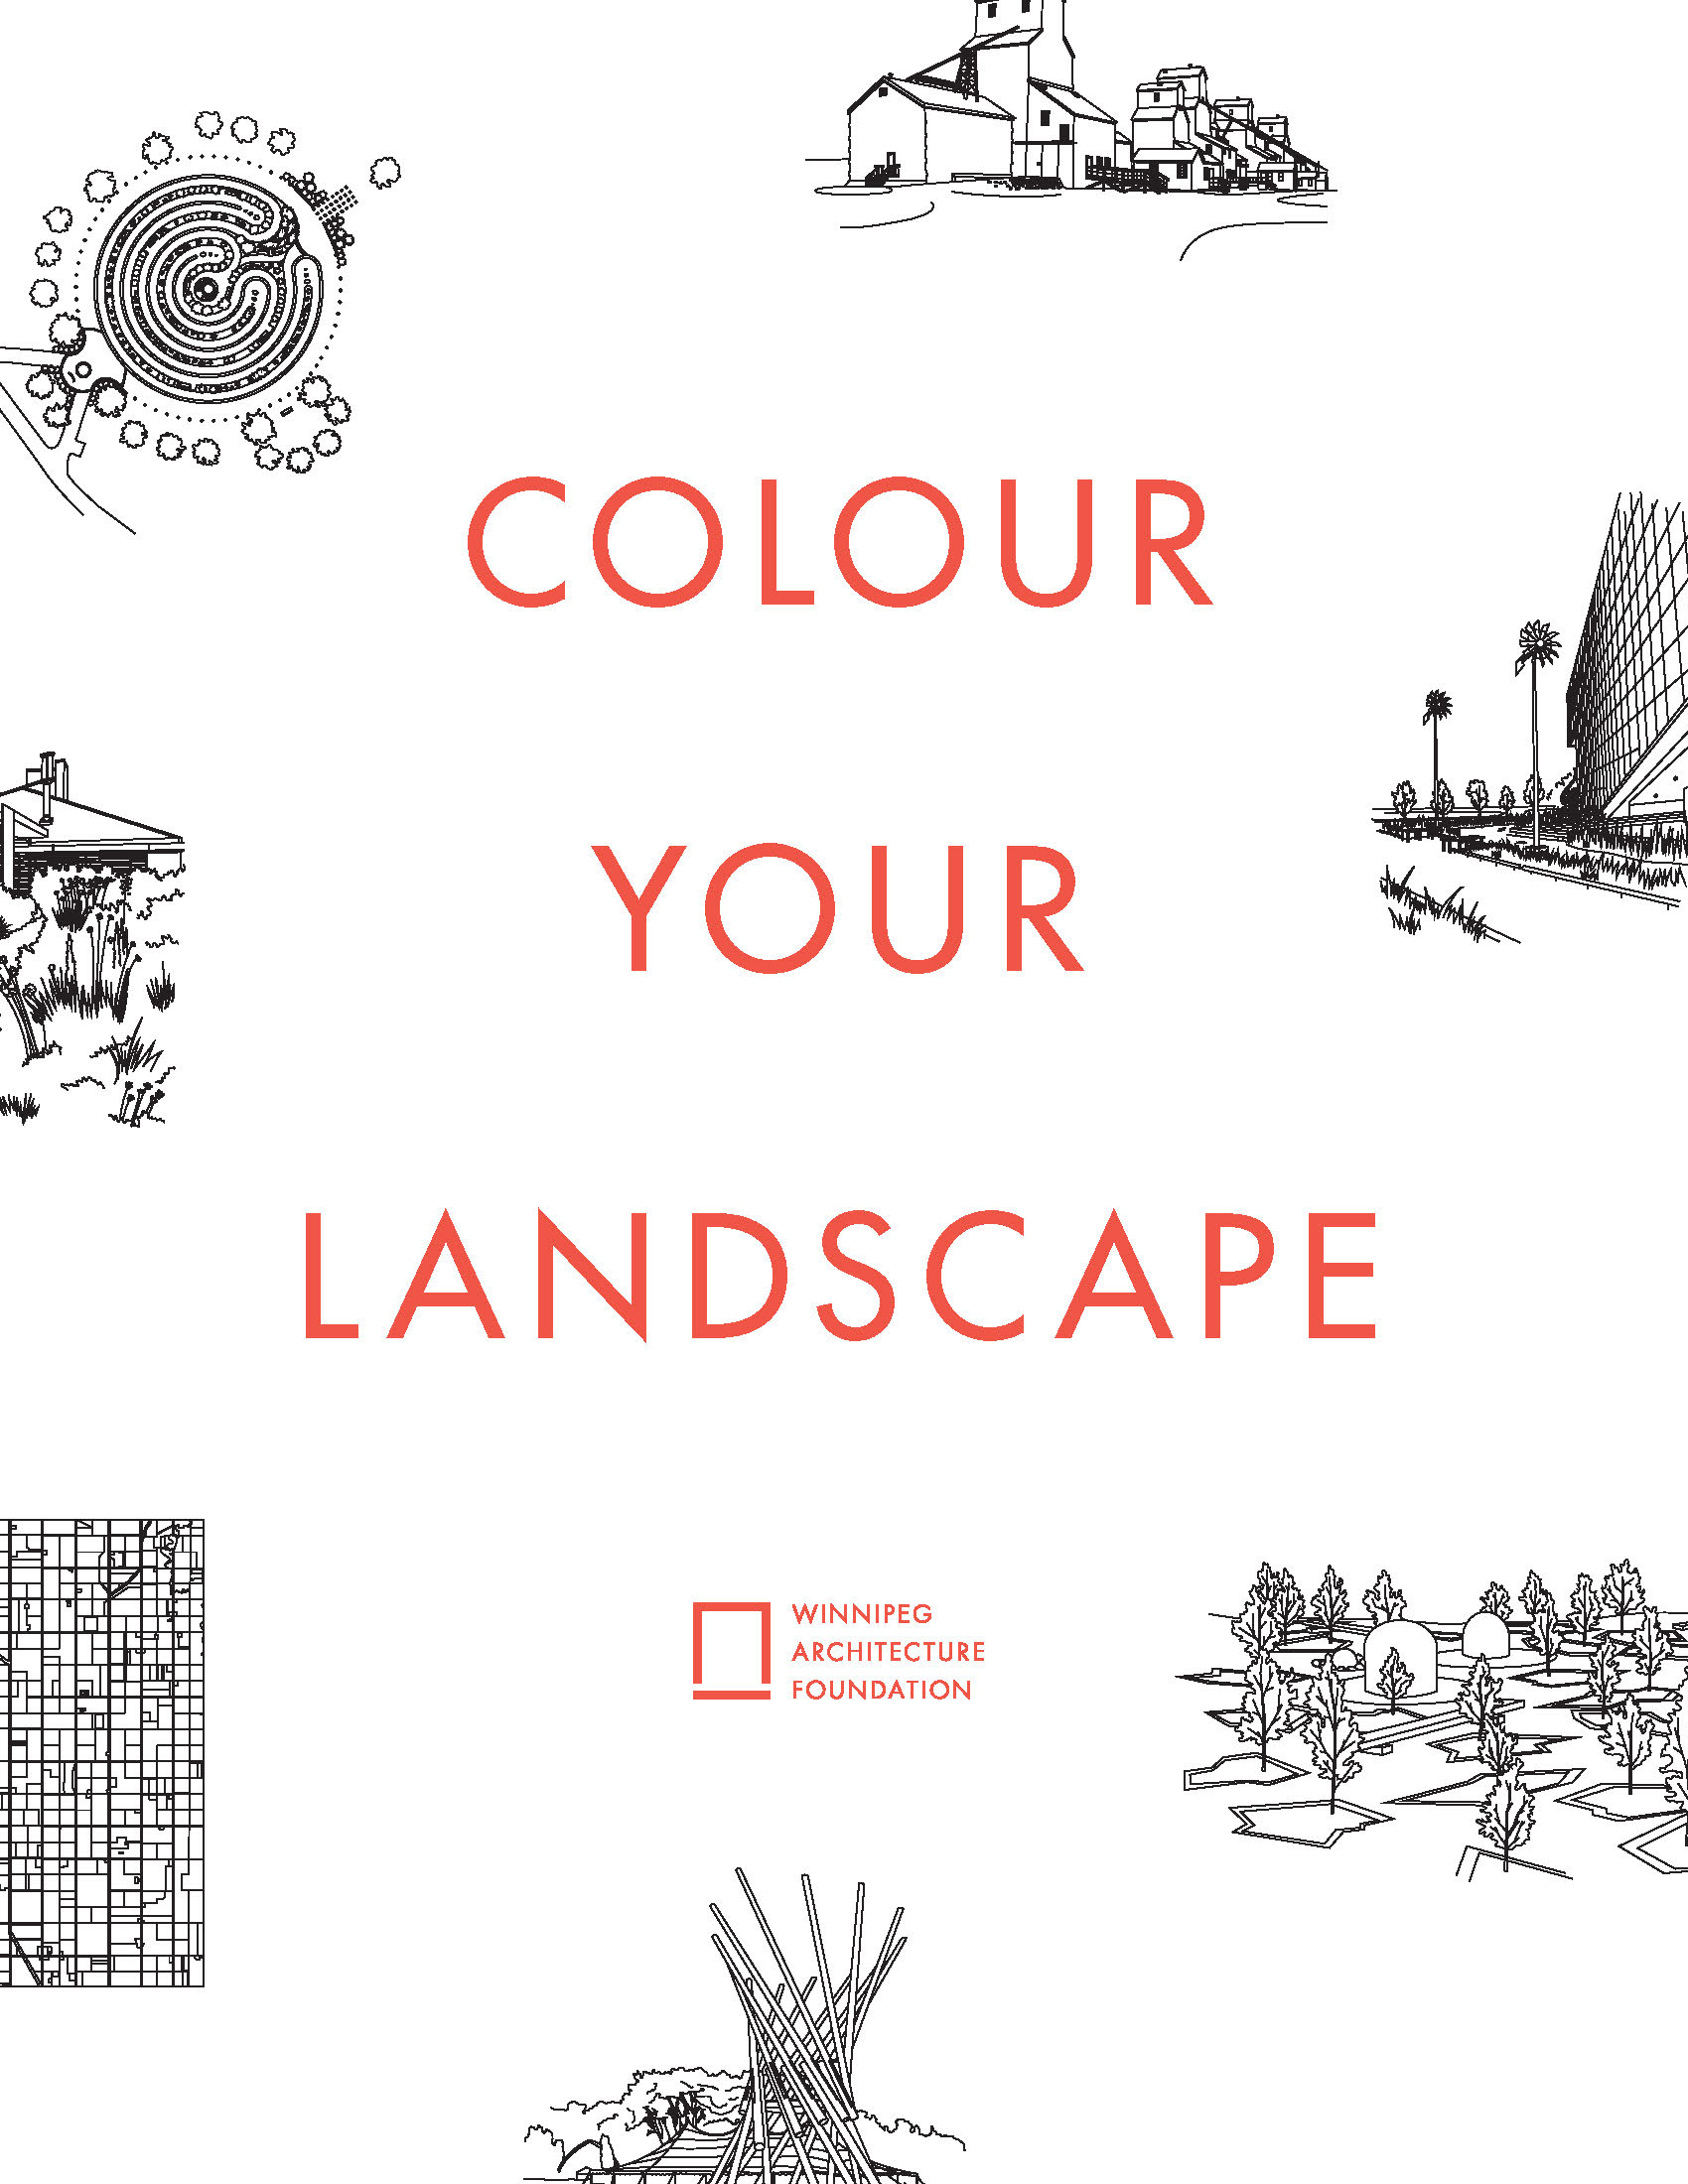 Colour Your Landscape